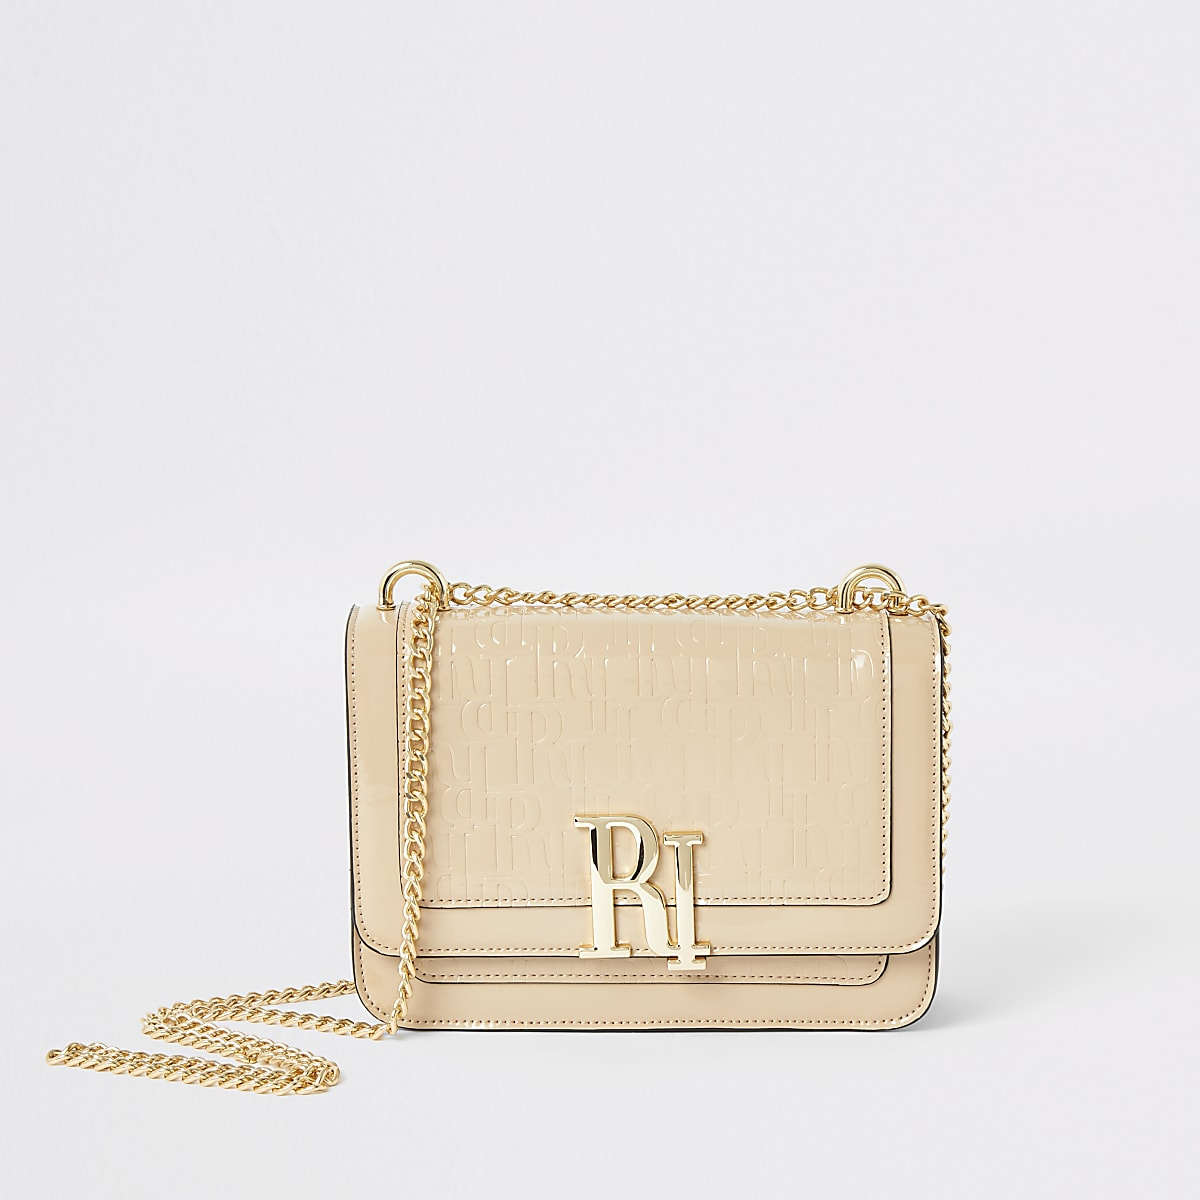 Light beige RI embossed underarm bag